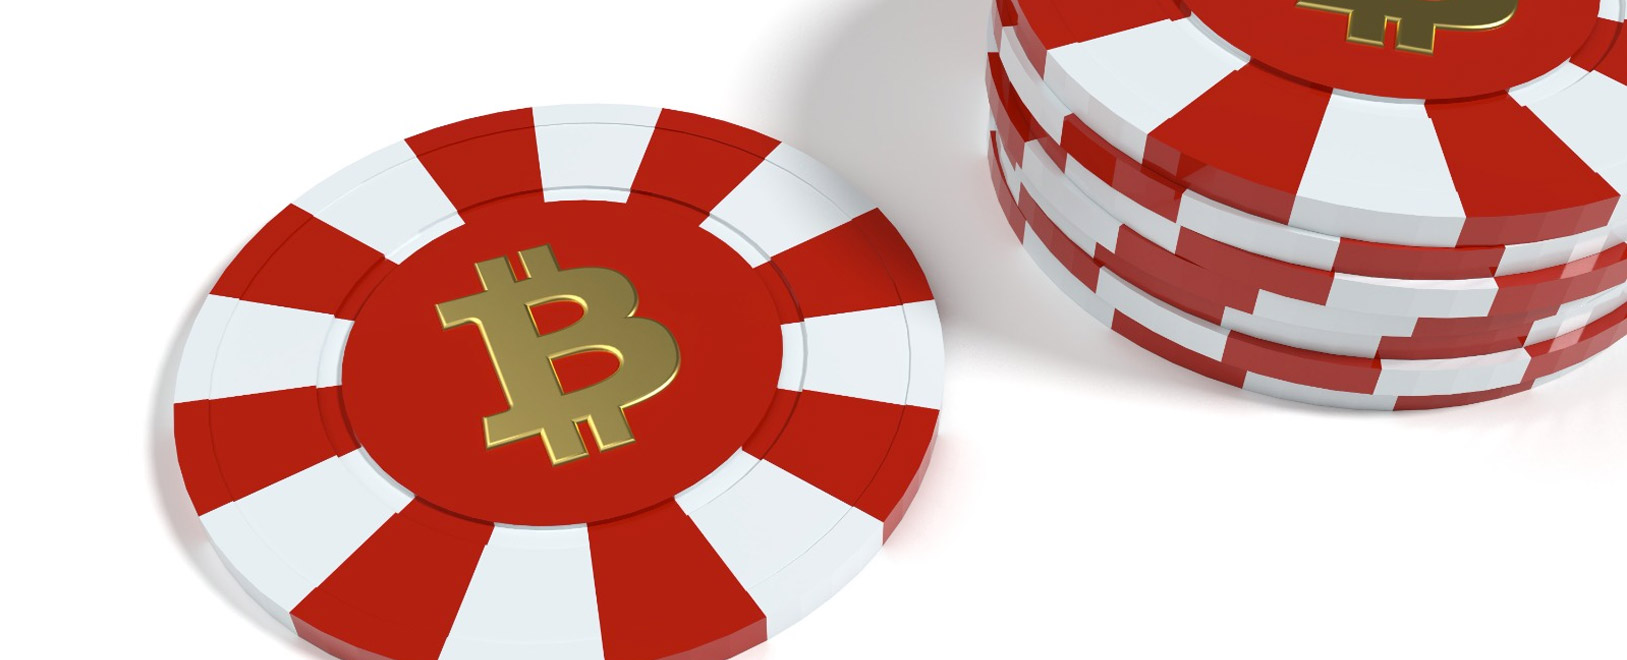 Play poker at Ignition and earn more Bitcoin!